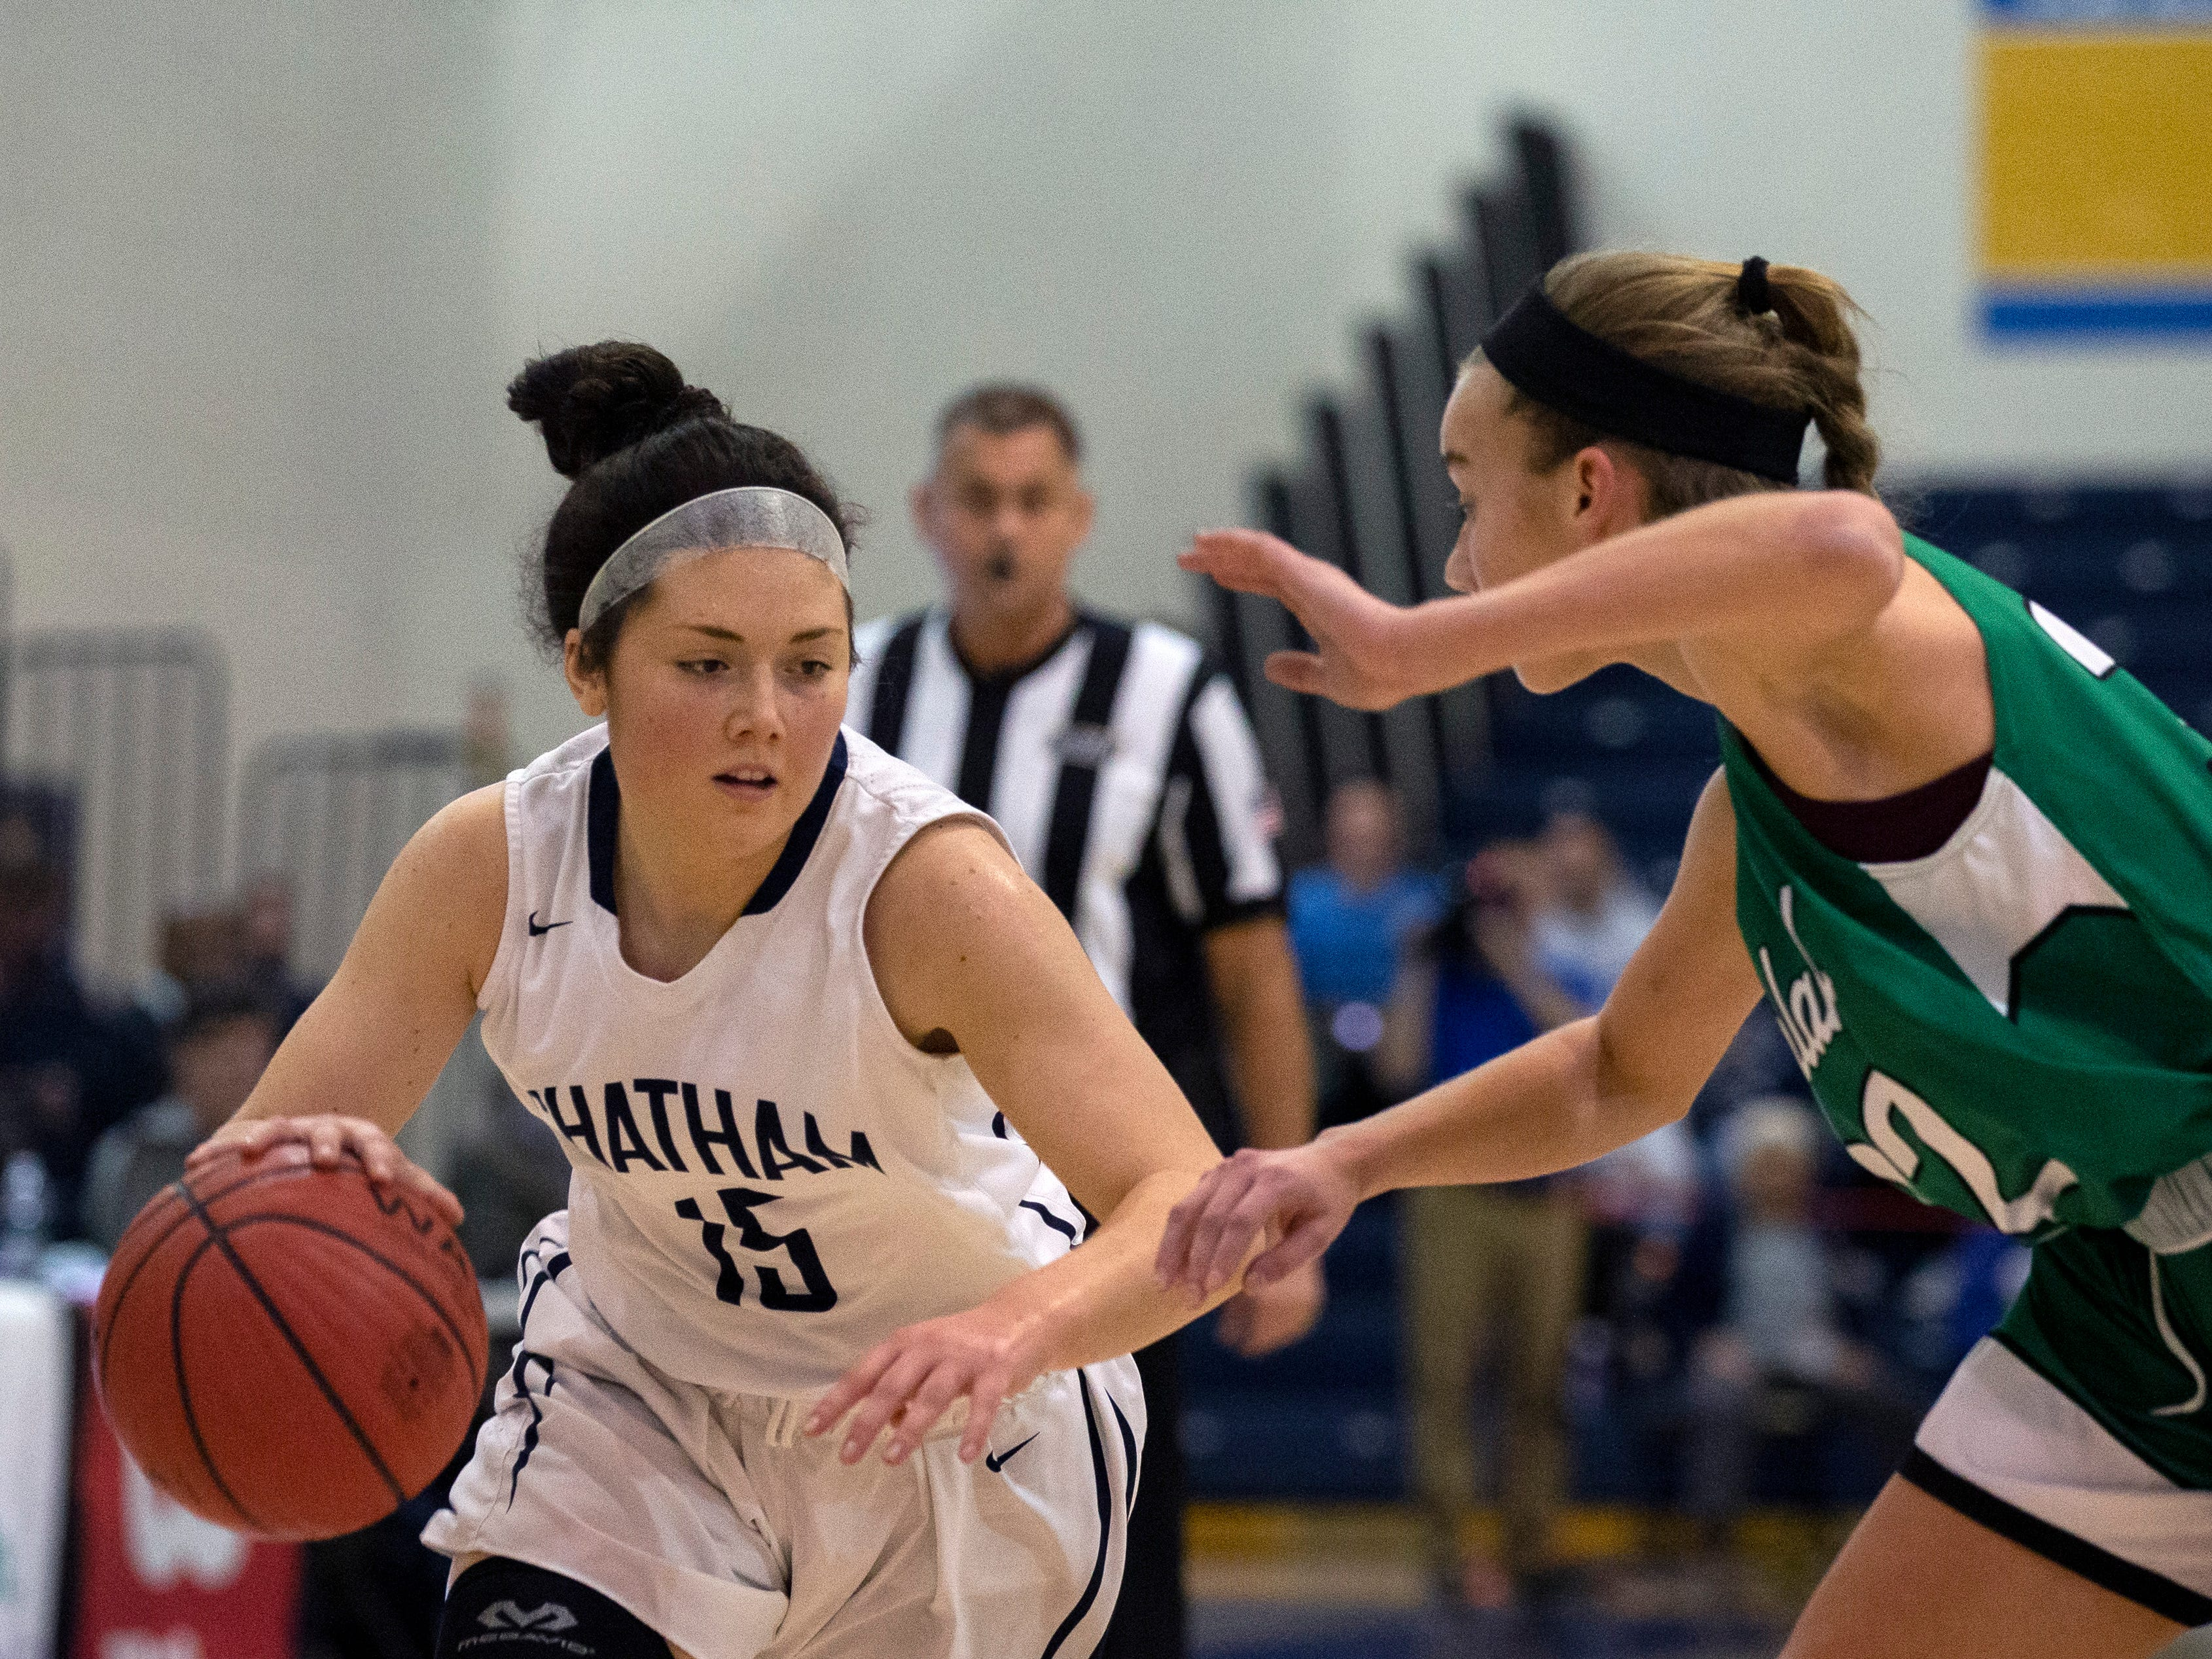 Chatham sophomore guard Tess Ford brings the ball up the court during the  Group III girls basketball final against Mainland in Toms River on March 10, 2019.